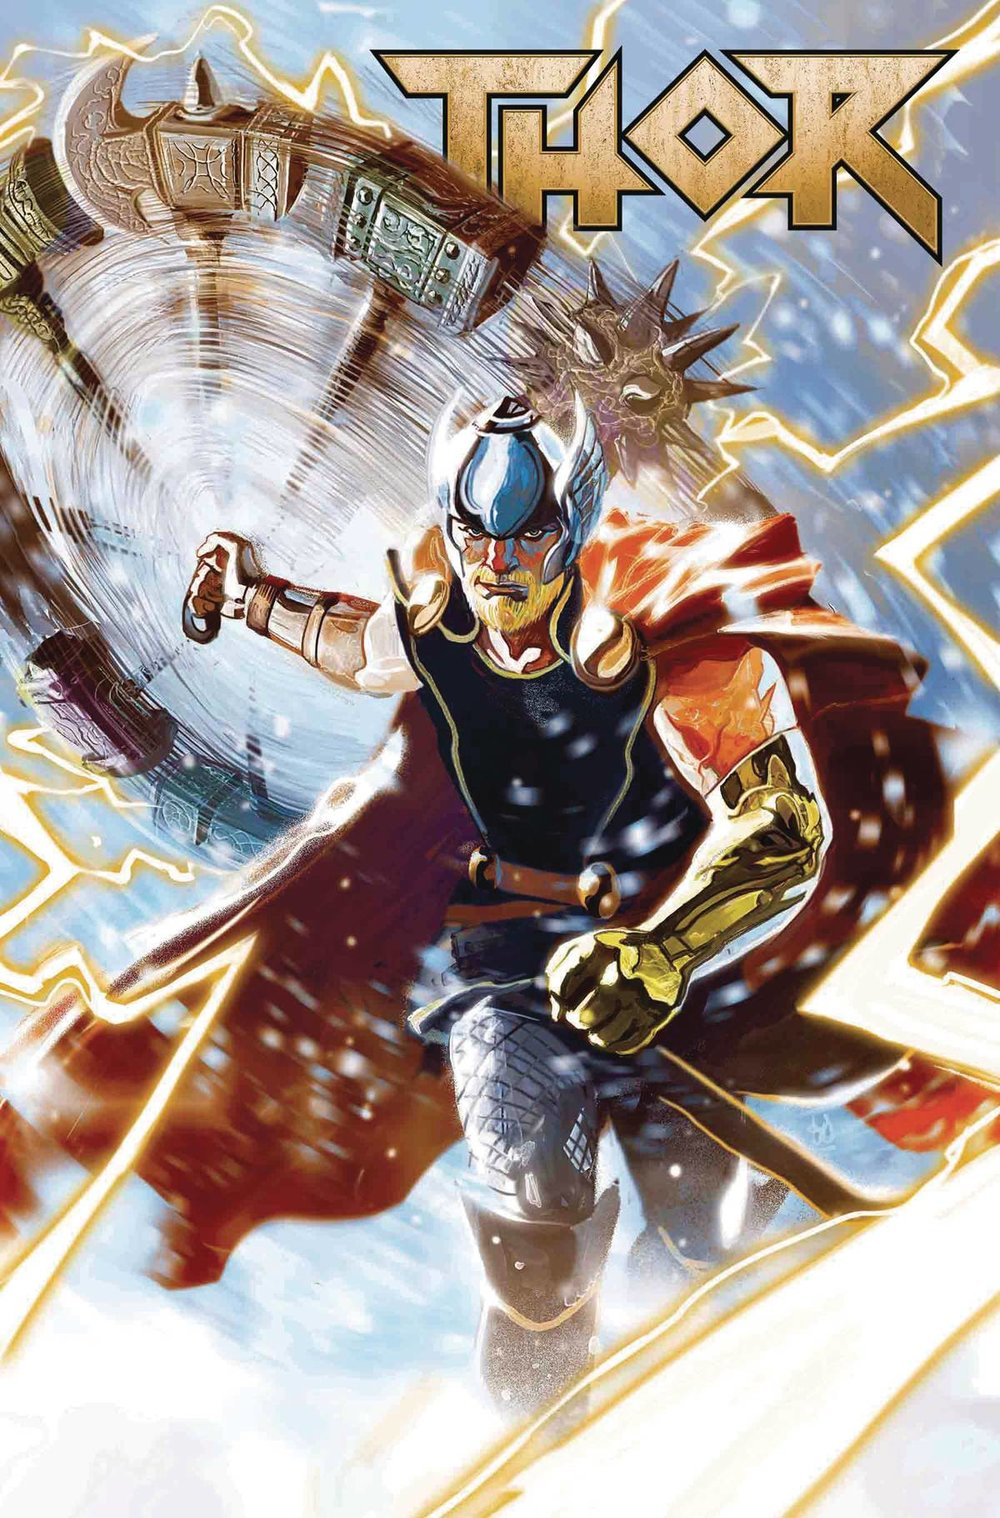 Thor #1 (LGY #707) - Trish's PickWriter: Jason AaronArtists: Michael Del Mundo, Christian WardColorists: Christian Ward, Marco D'Alfonso and Mike Del MundoLetterer: Joe SabinoJason Aaron's long run on Thor begins a new tale - a tale of Asgardian brothers that seem to be going on a road trip through Niffleheim? Thor is back, and Loki and Balder join him now with their trusty hellhound and goat as they all find themselves teleported to the realm of the dead. The painted art style by Del Mundo is an incredible fit for Thor, not only is his art always insanely gorgeous but each realm that is visited feels unique due to the vast array of selected colors used for each. The first half of the issue mentions recent continuity, but each story is quickly summarized and wrapped up before the new story begins which makes this issue incredibly friendly for new readers. Please read Thor, thanks, I love him.